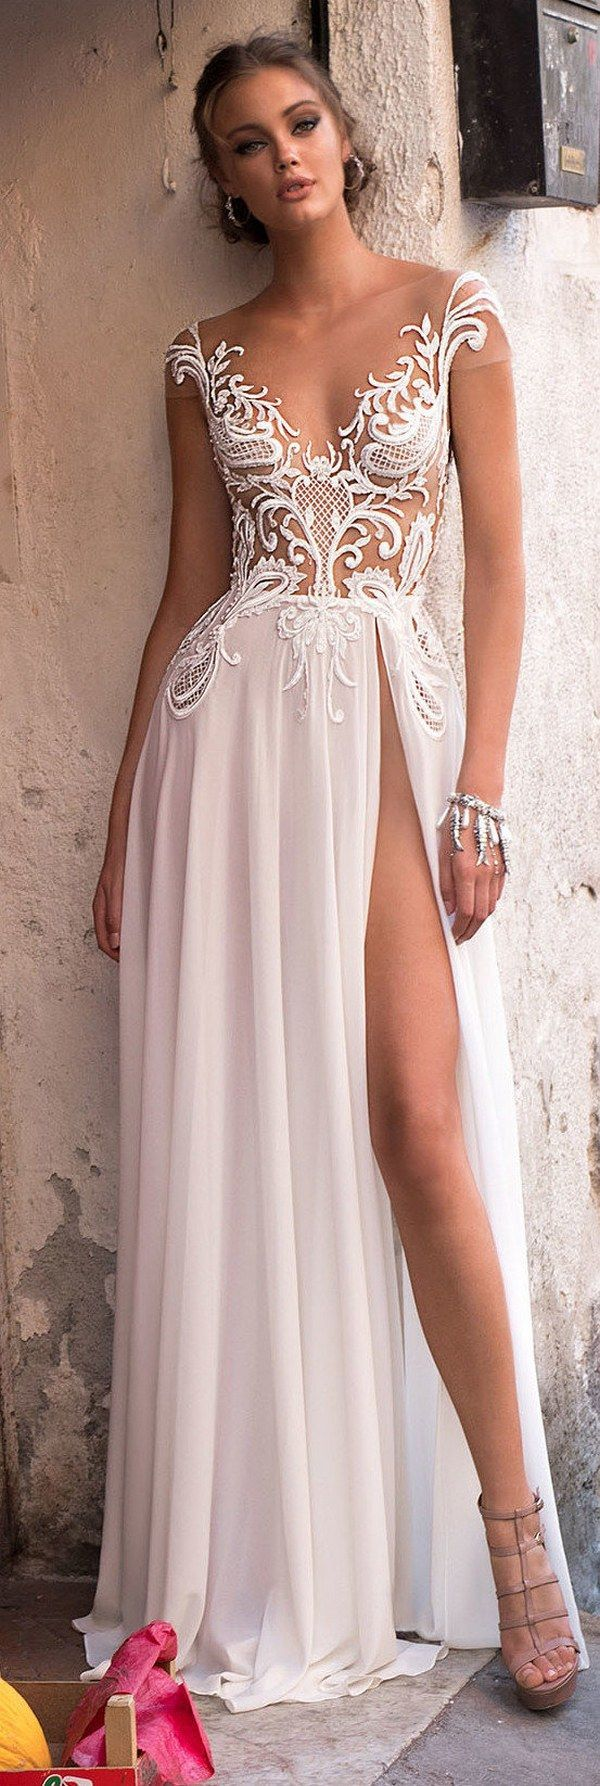 Muse by berta sicily wedding dresses wedding vow renewal one